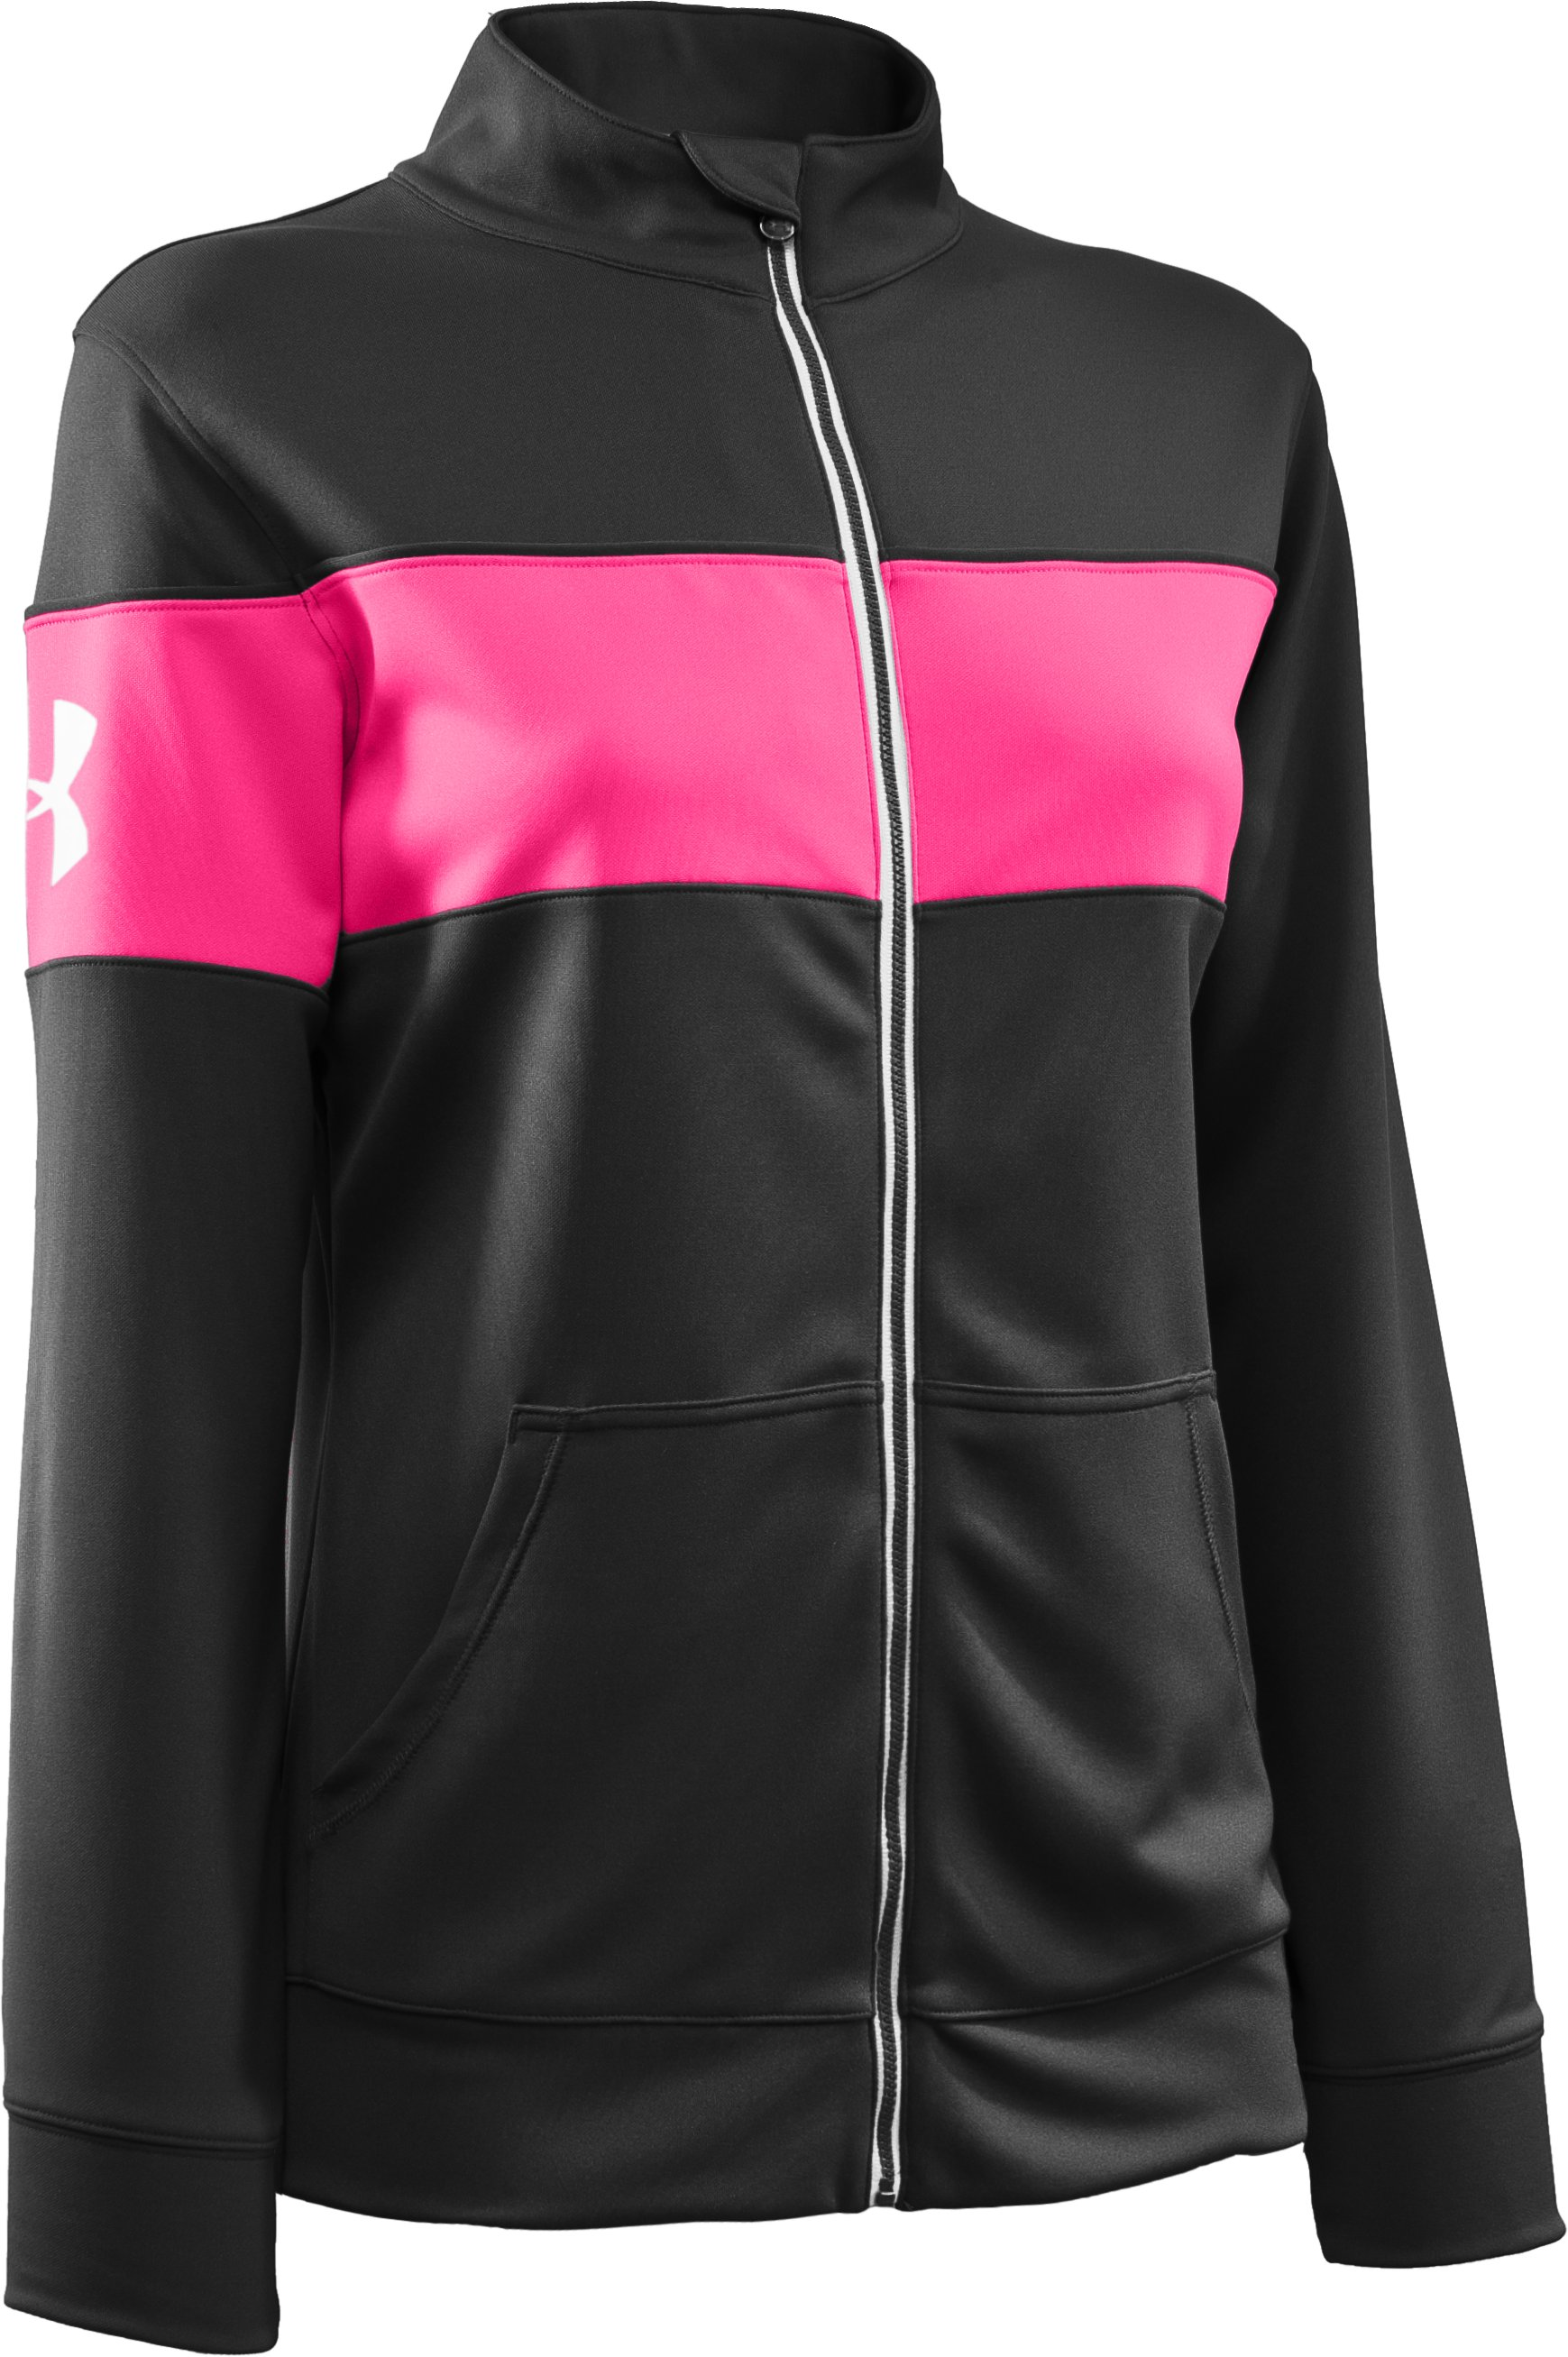 Women's UA Hero Full-Zip Warm-Up Jacket, Black